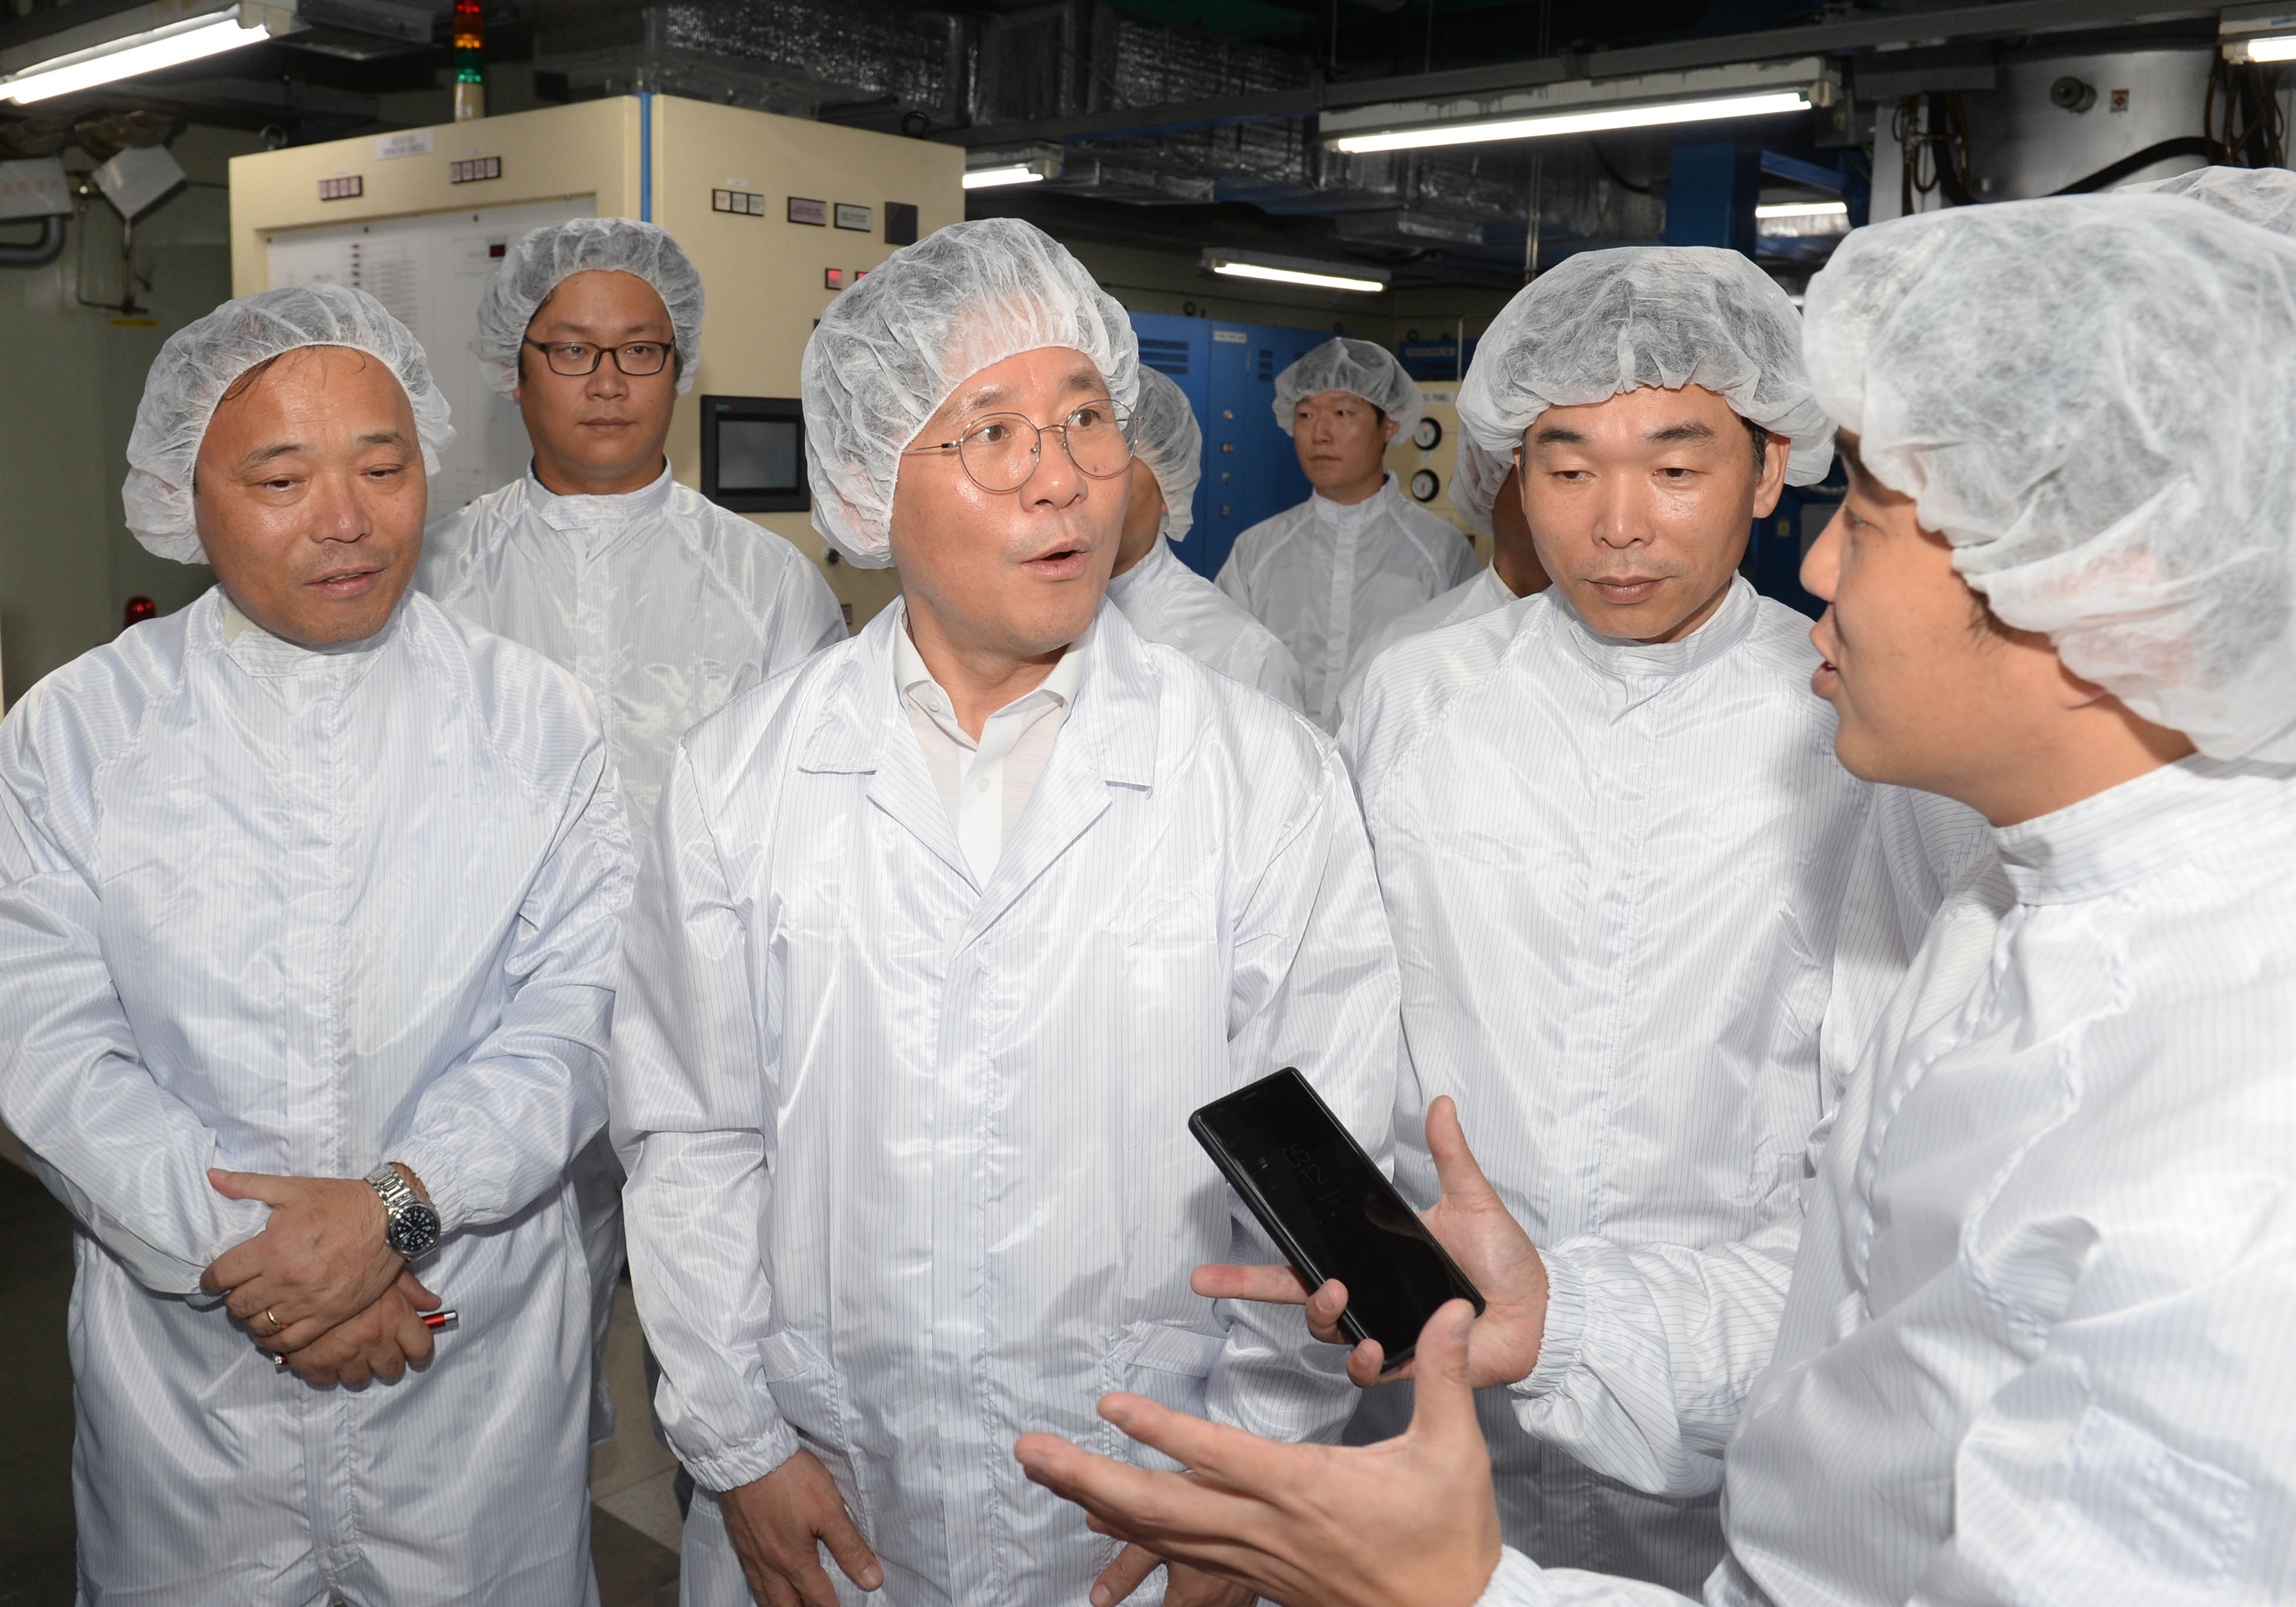 Minister Sung visits a leading fiber optic cable manufacturing company in Ansan Image 0